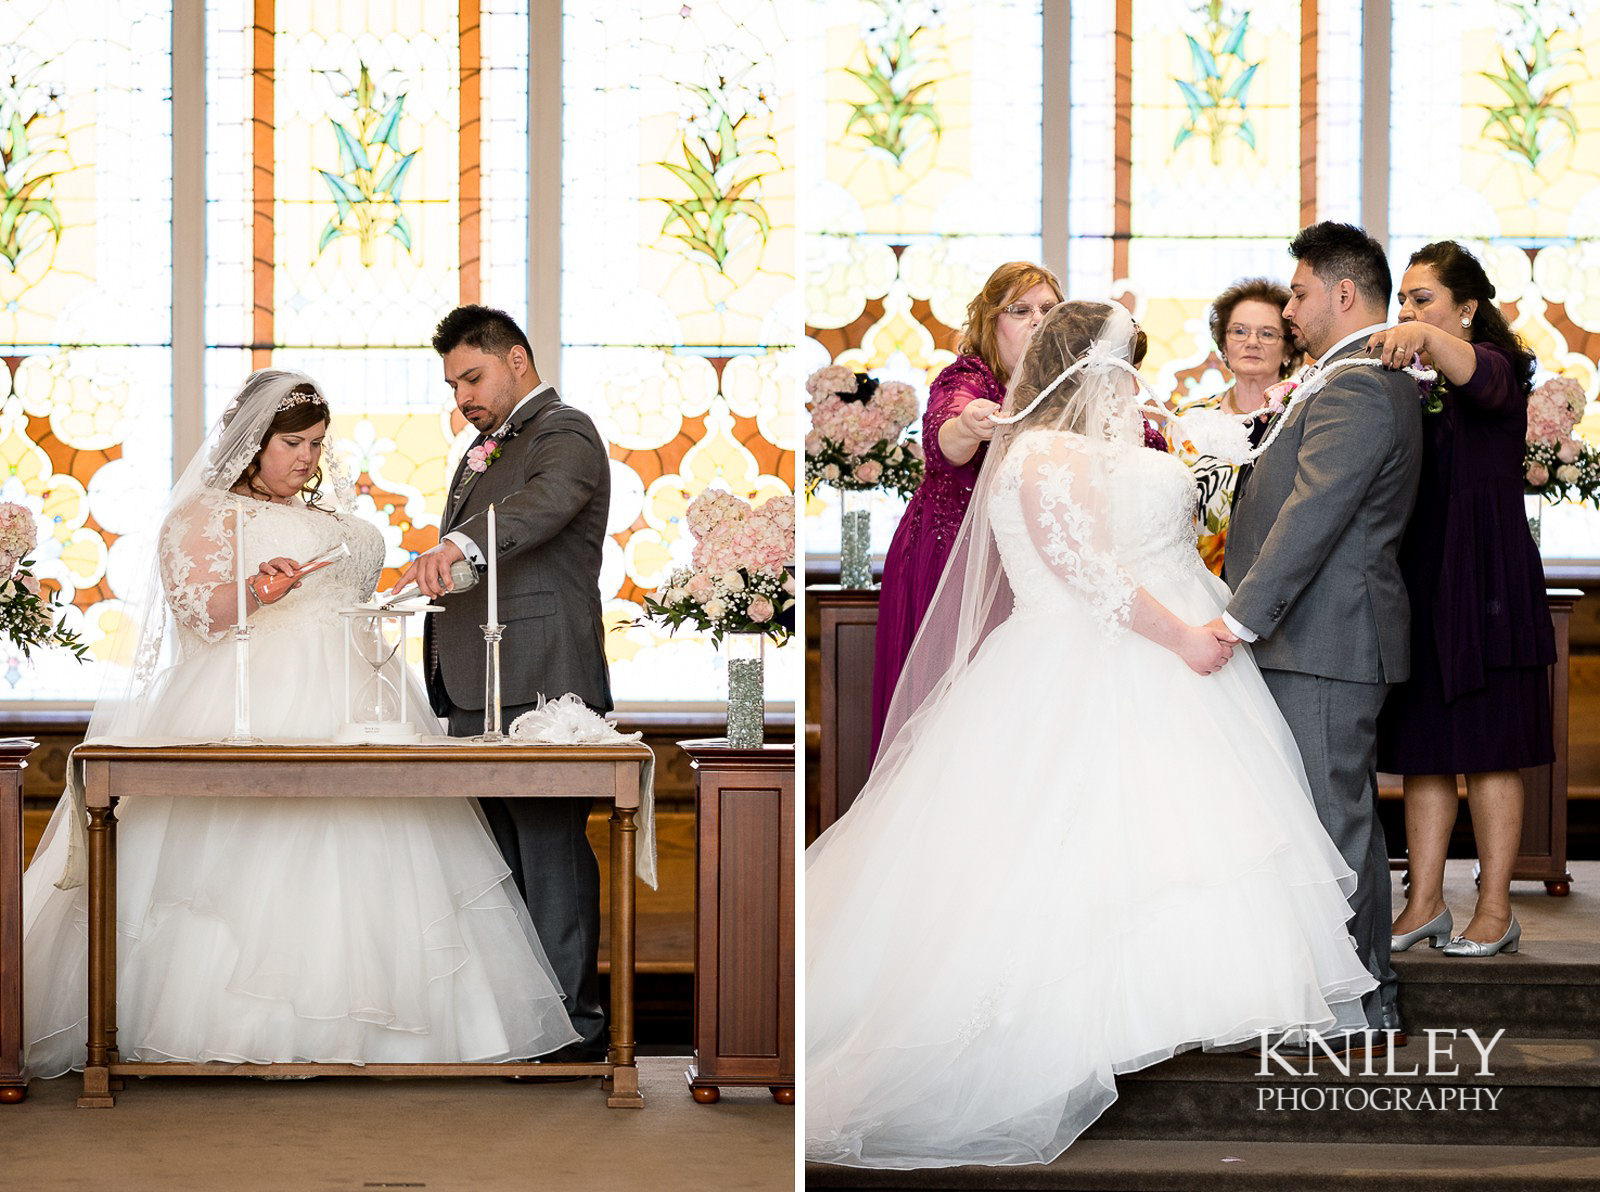 042 - Westminster Chapel - Rochester NY wedding photo - Kniley Photography.jpg